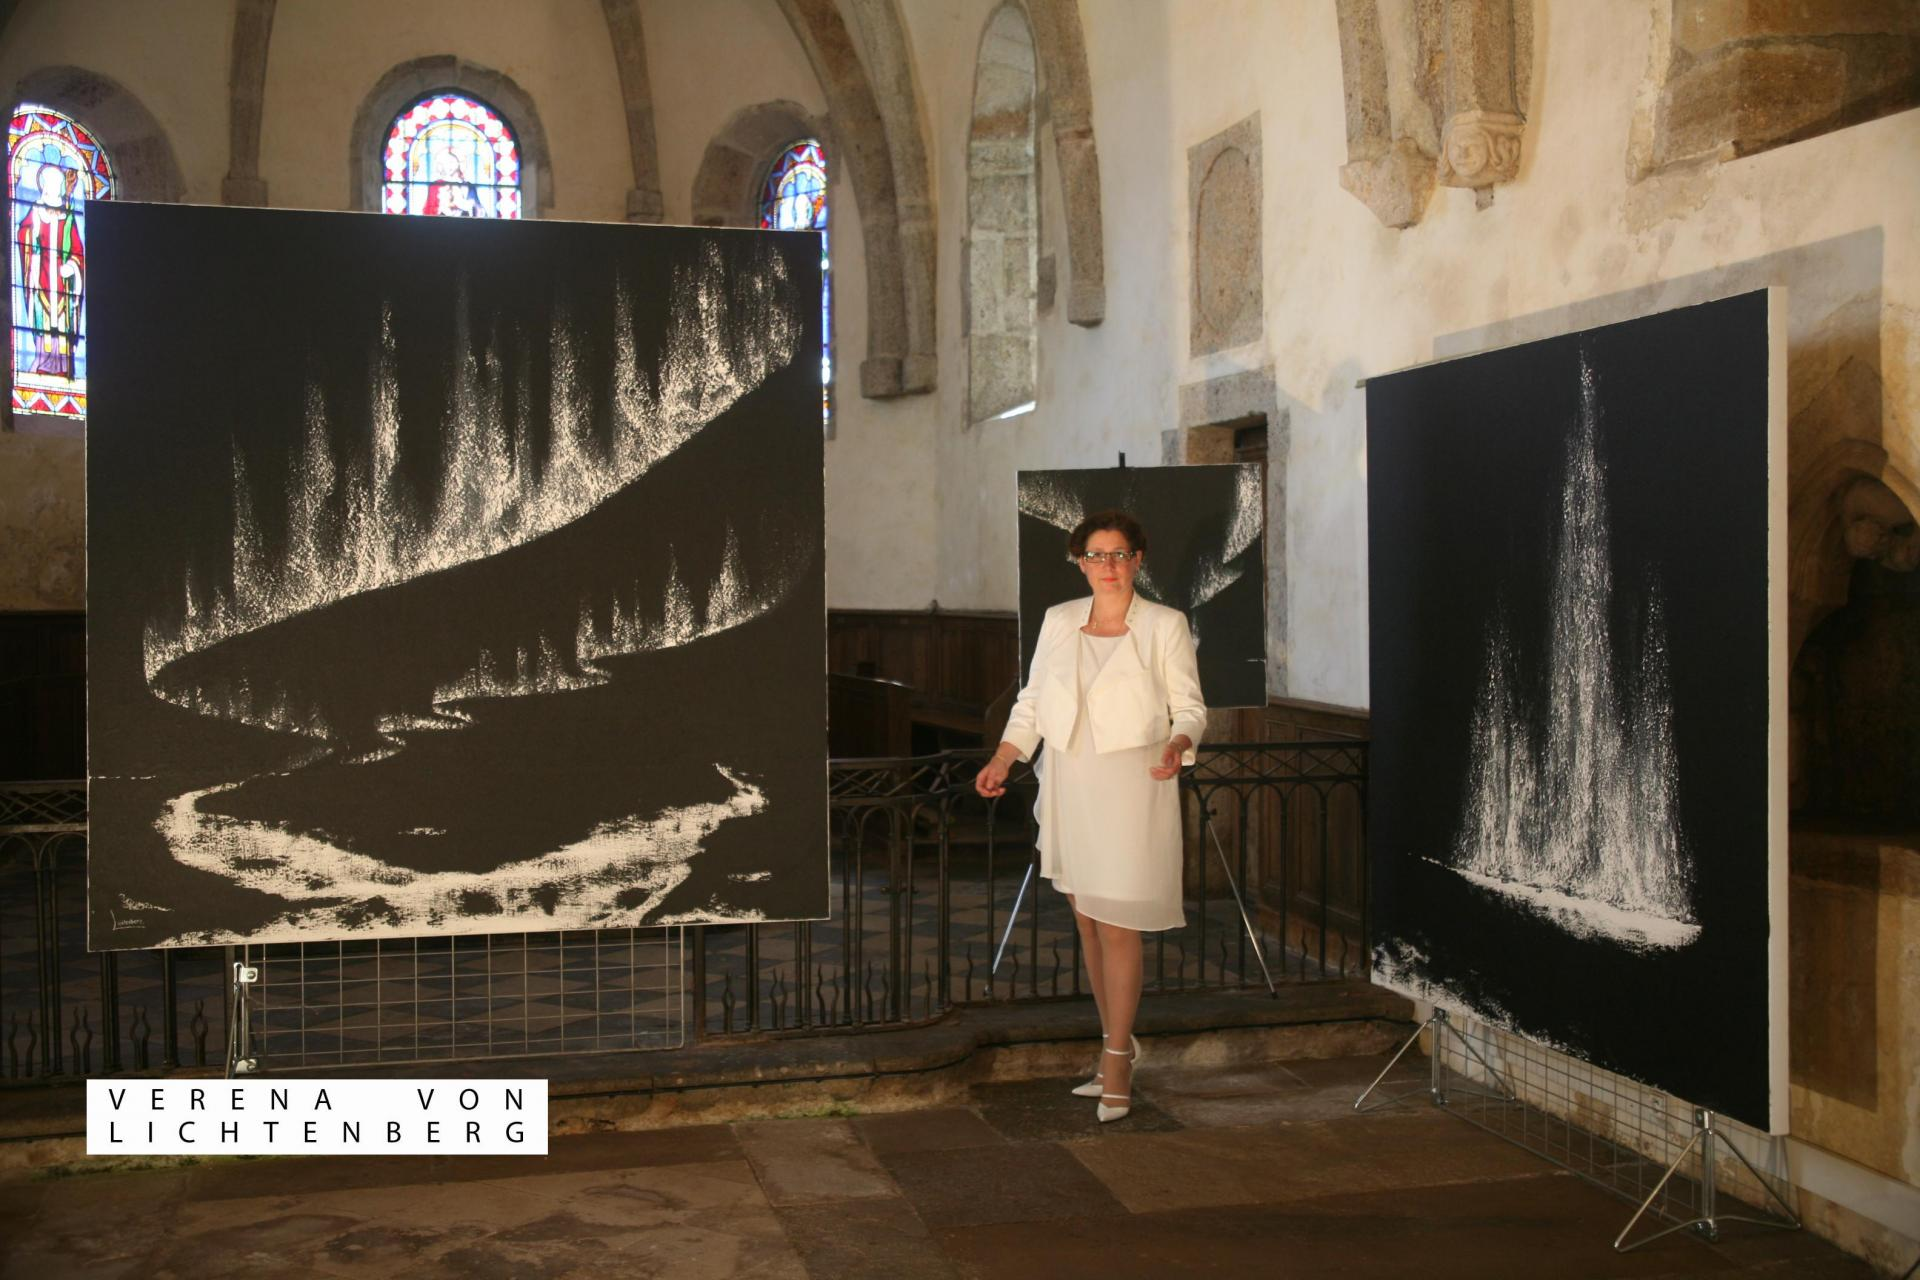 1 the painter verena von lichtenberg the artist and her exhibition is in saturnin the french bourgogne